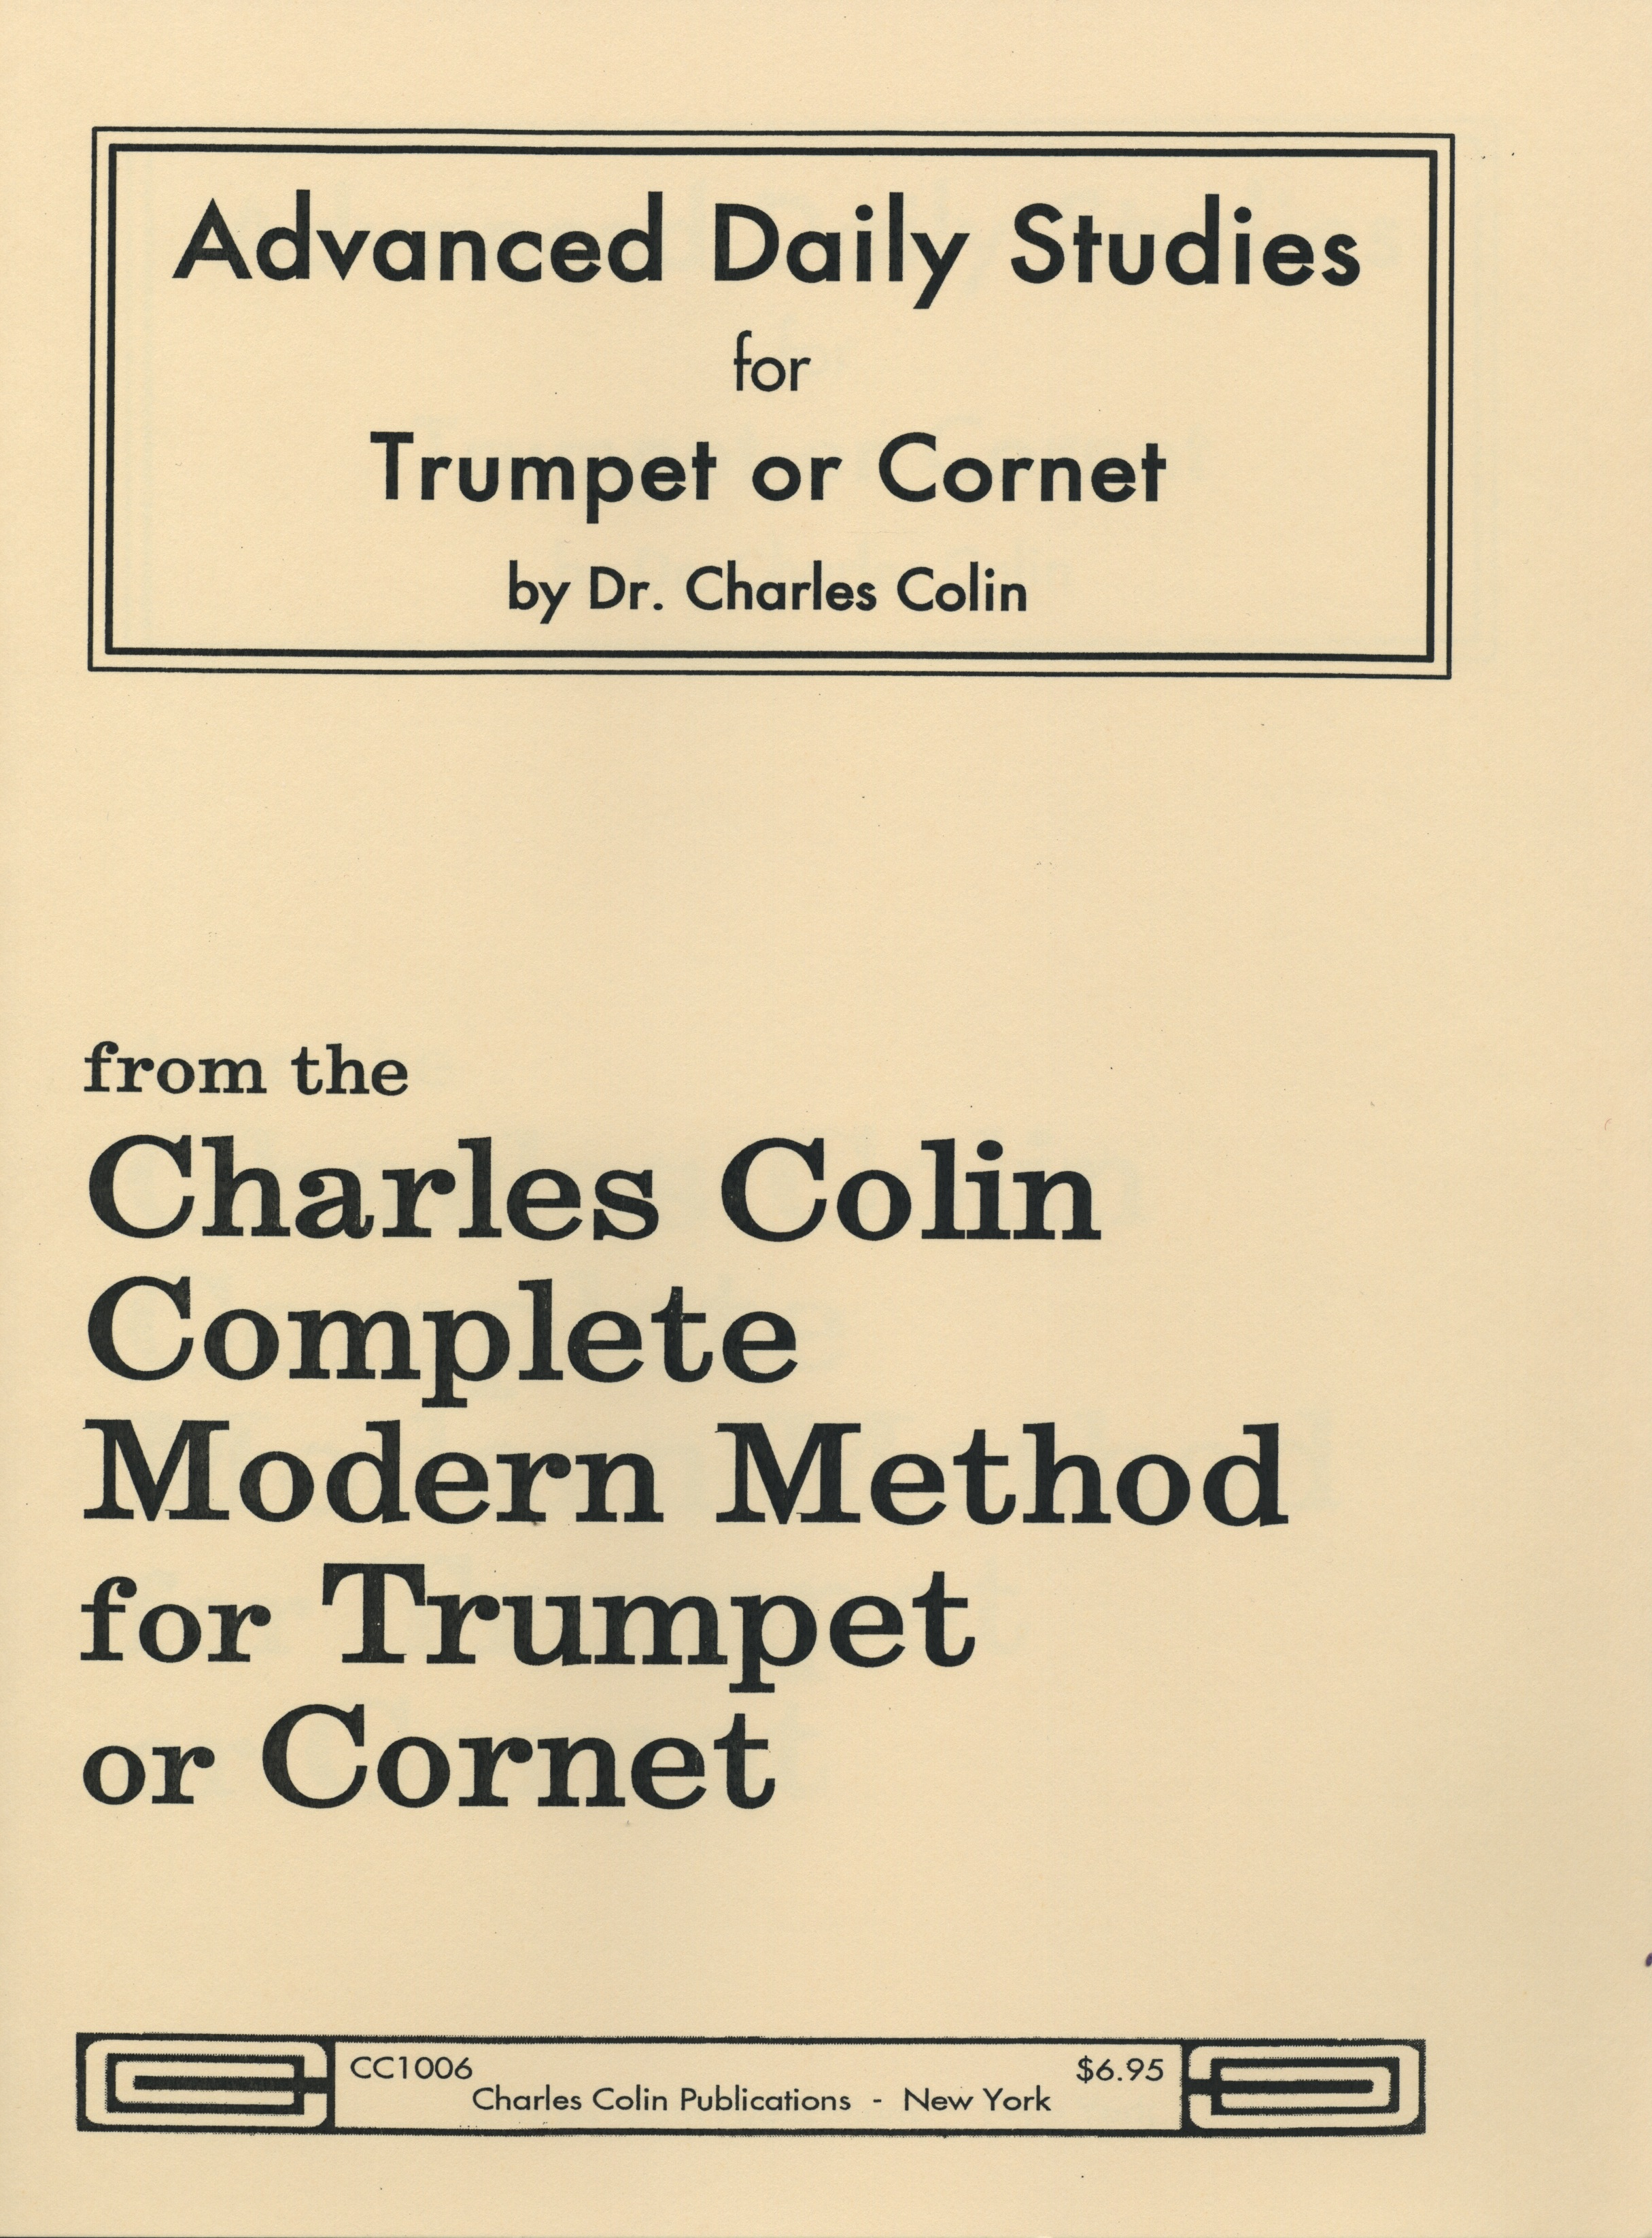 Charles Colin's Advanced Daily Studies